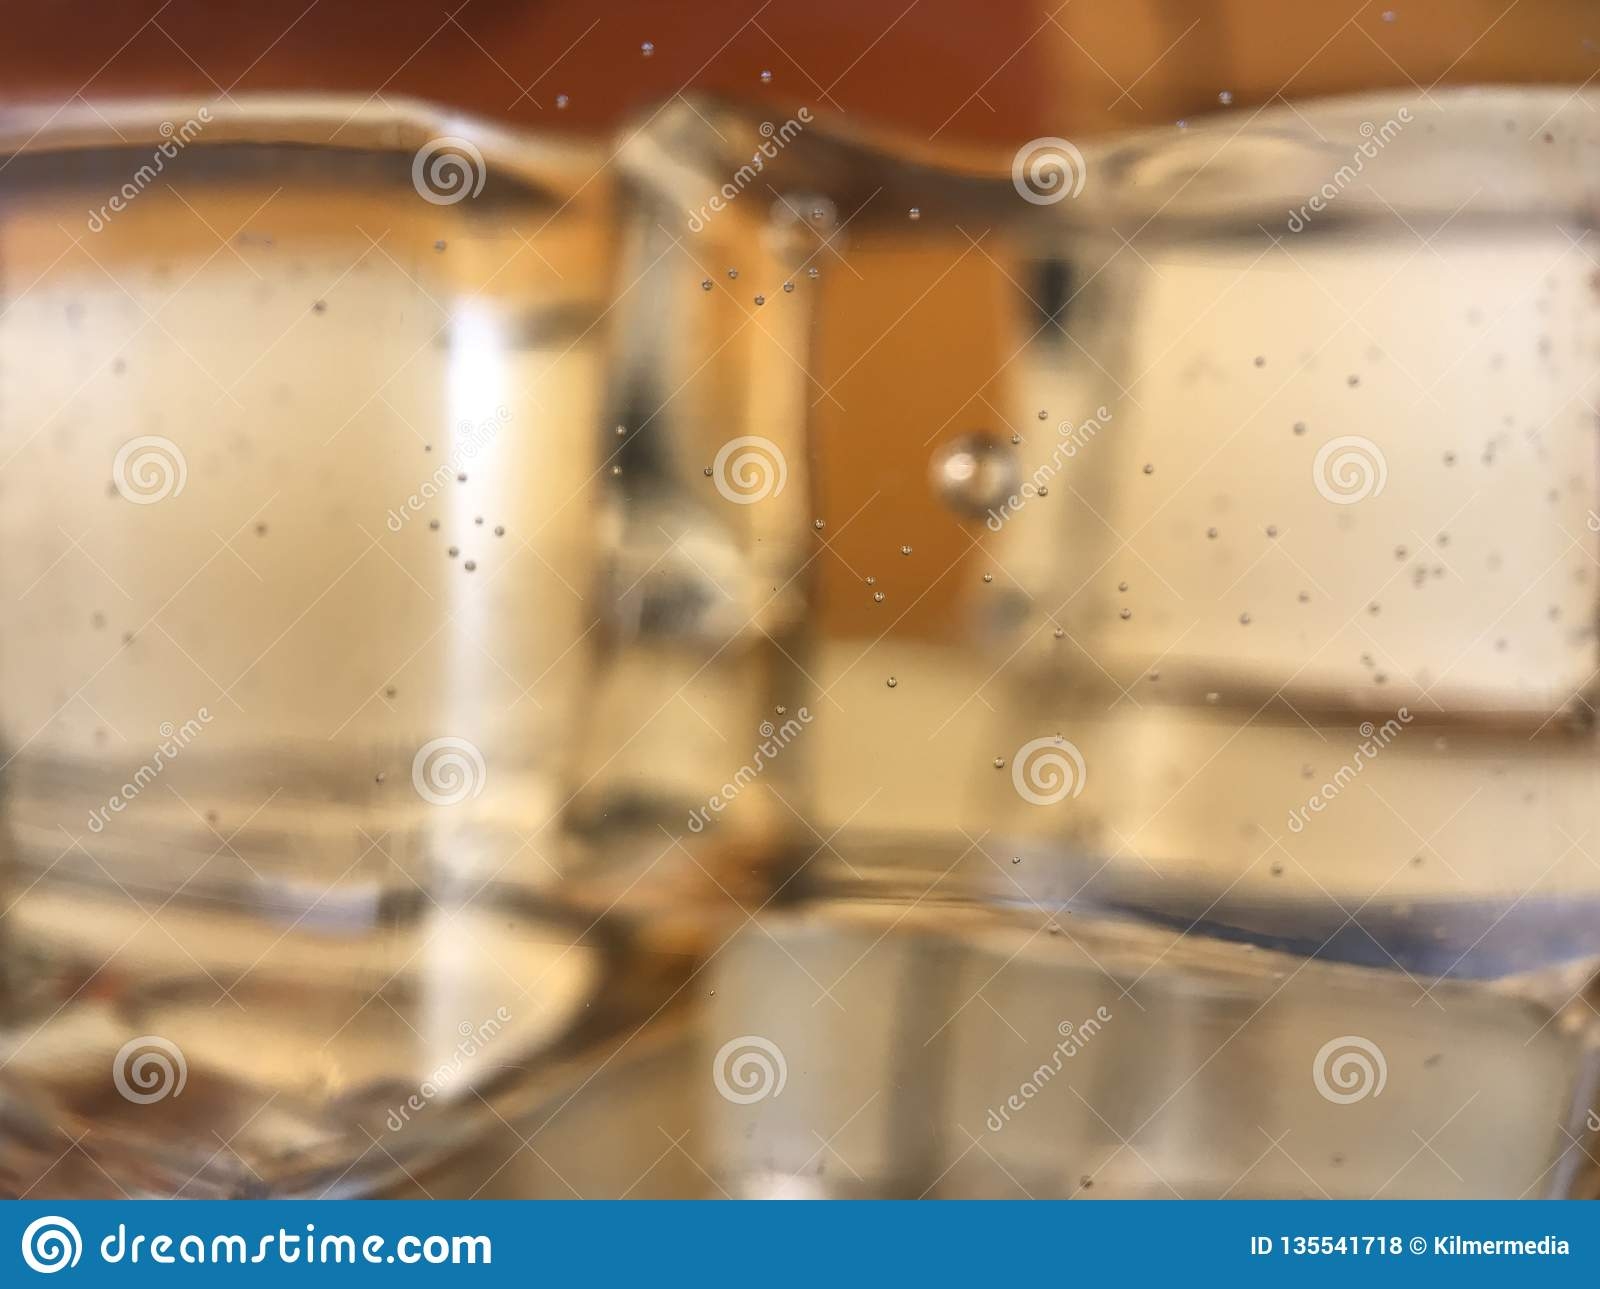 Small Bubbles On The Inside Of A Glass Filled With Whiskey